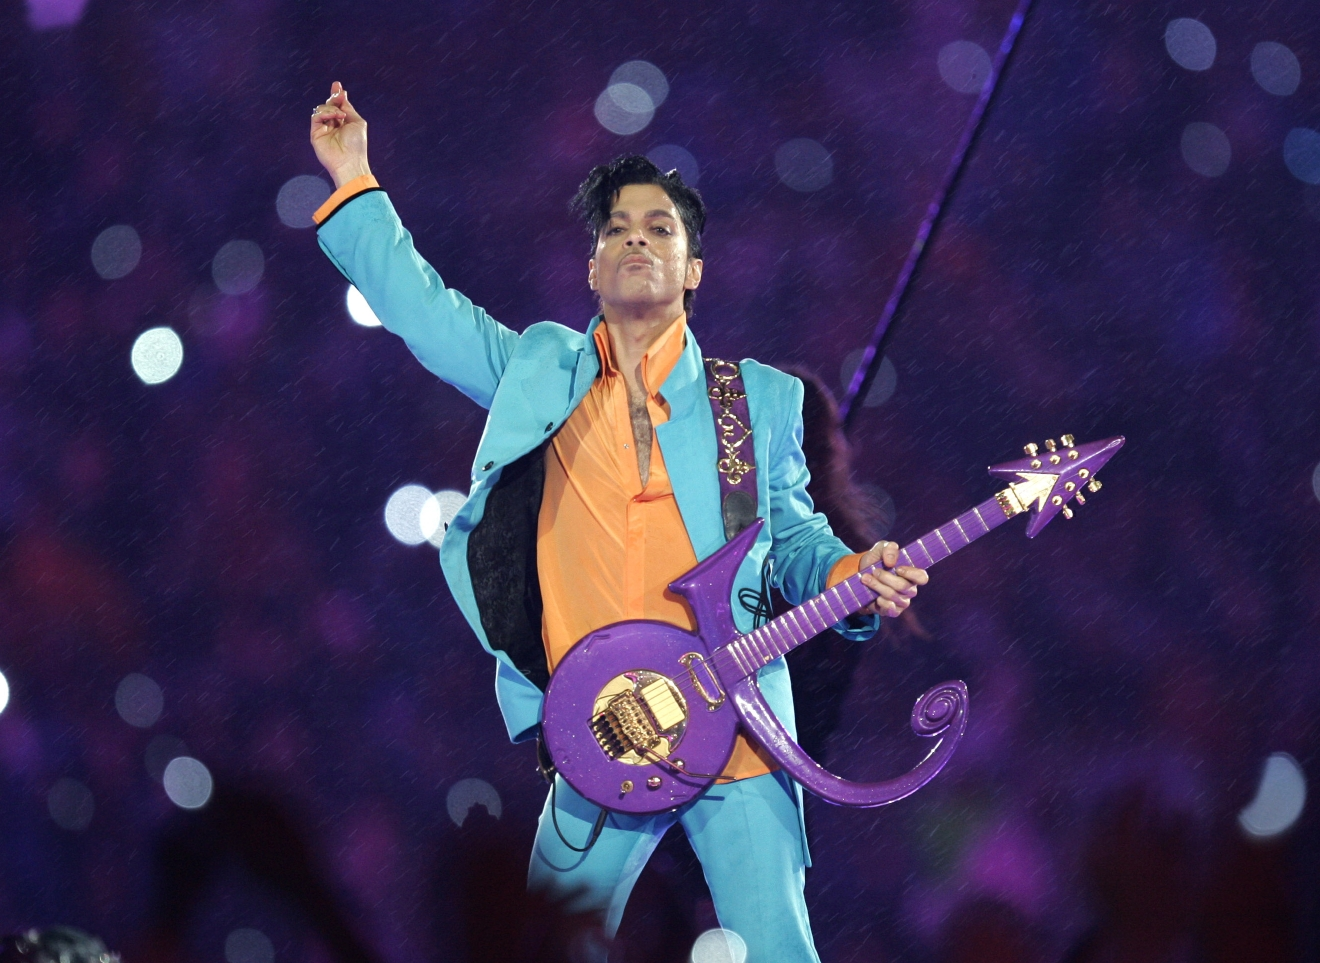 "In this Feb. 4, 2007 file photo, Prince performs during the halftime show at the Super Bowl XLI football game at Dolphin Stadium in Miami. The legendary musician, who rose to superstar status with the 1984 release of ""Purple Rain"", died April 21 at his home in Minnesota. (Photo: AP/Chris O'Meara, File)"